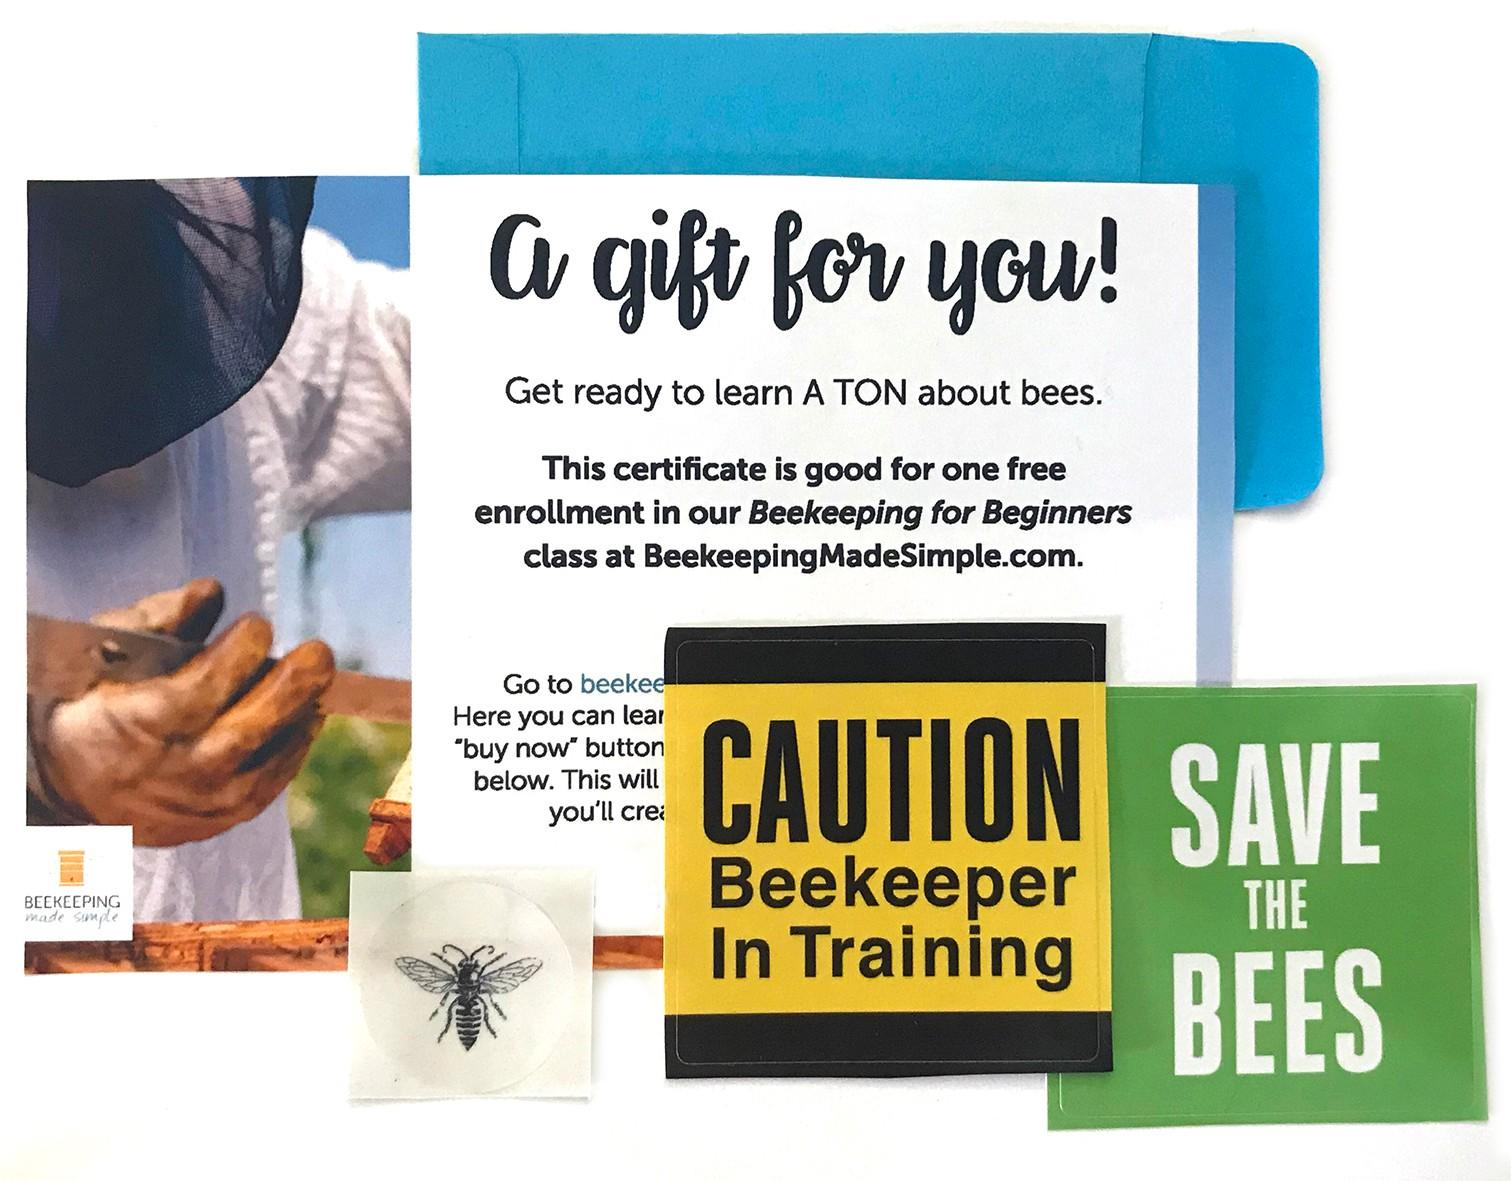 photo of online beekeeping class gift certificate